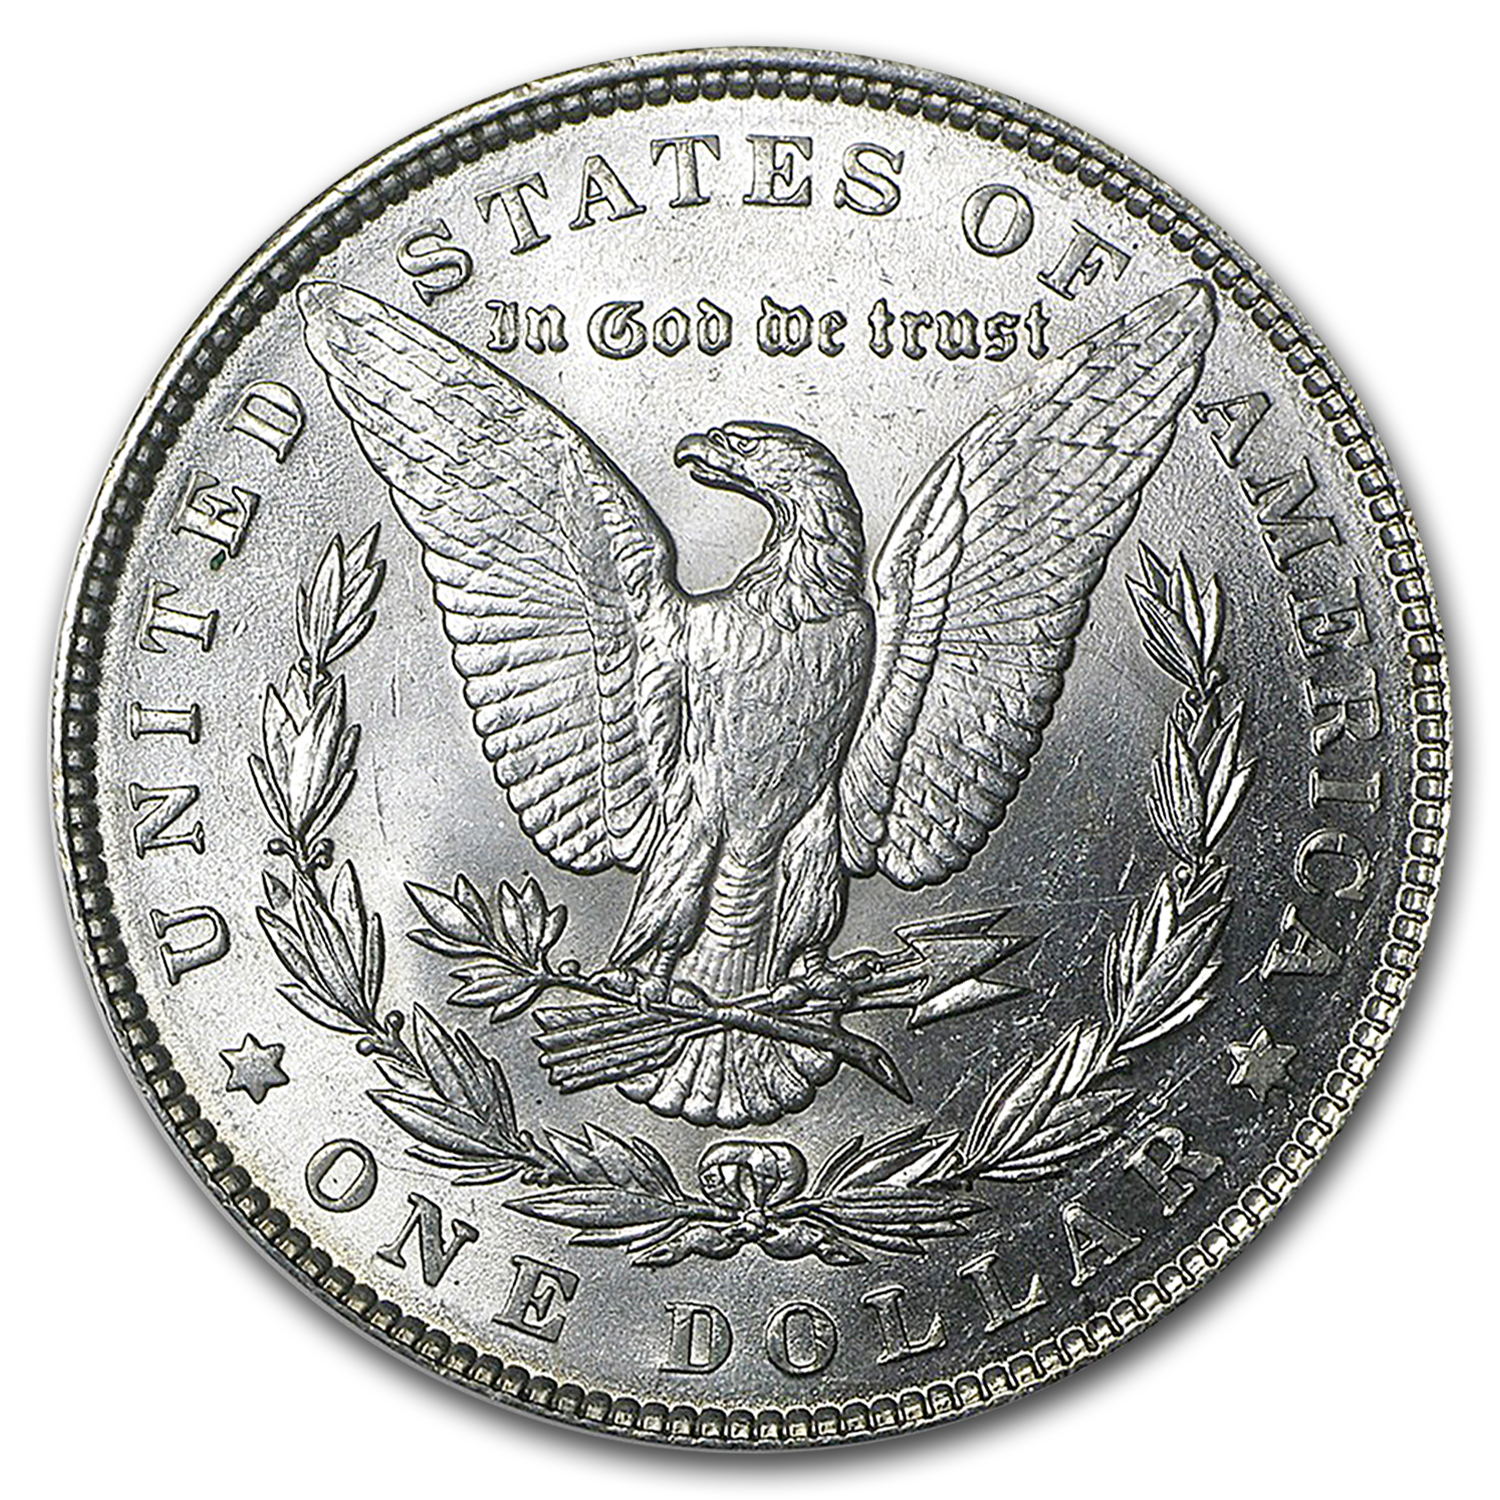 1889 Morgan Dollars Bu 20 Count Roll Silver Prices